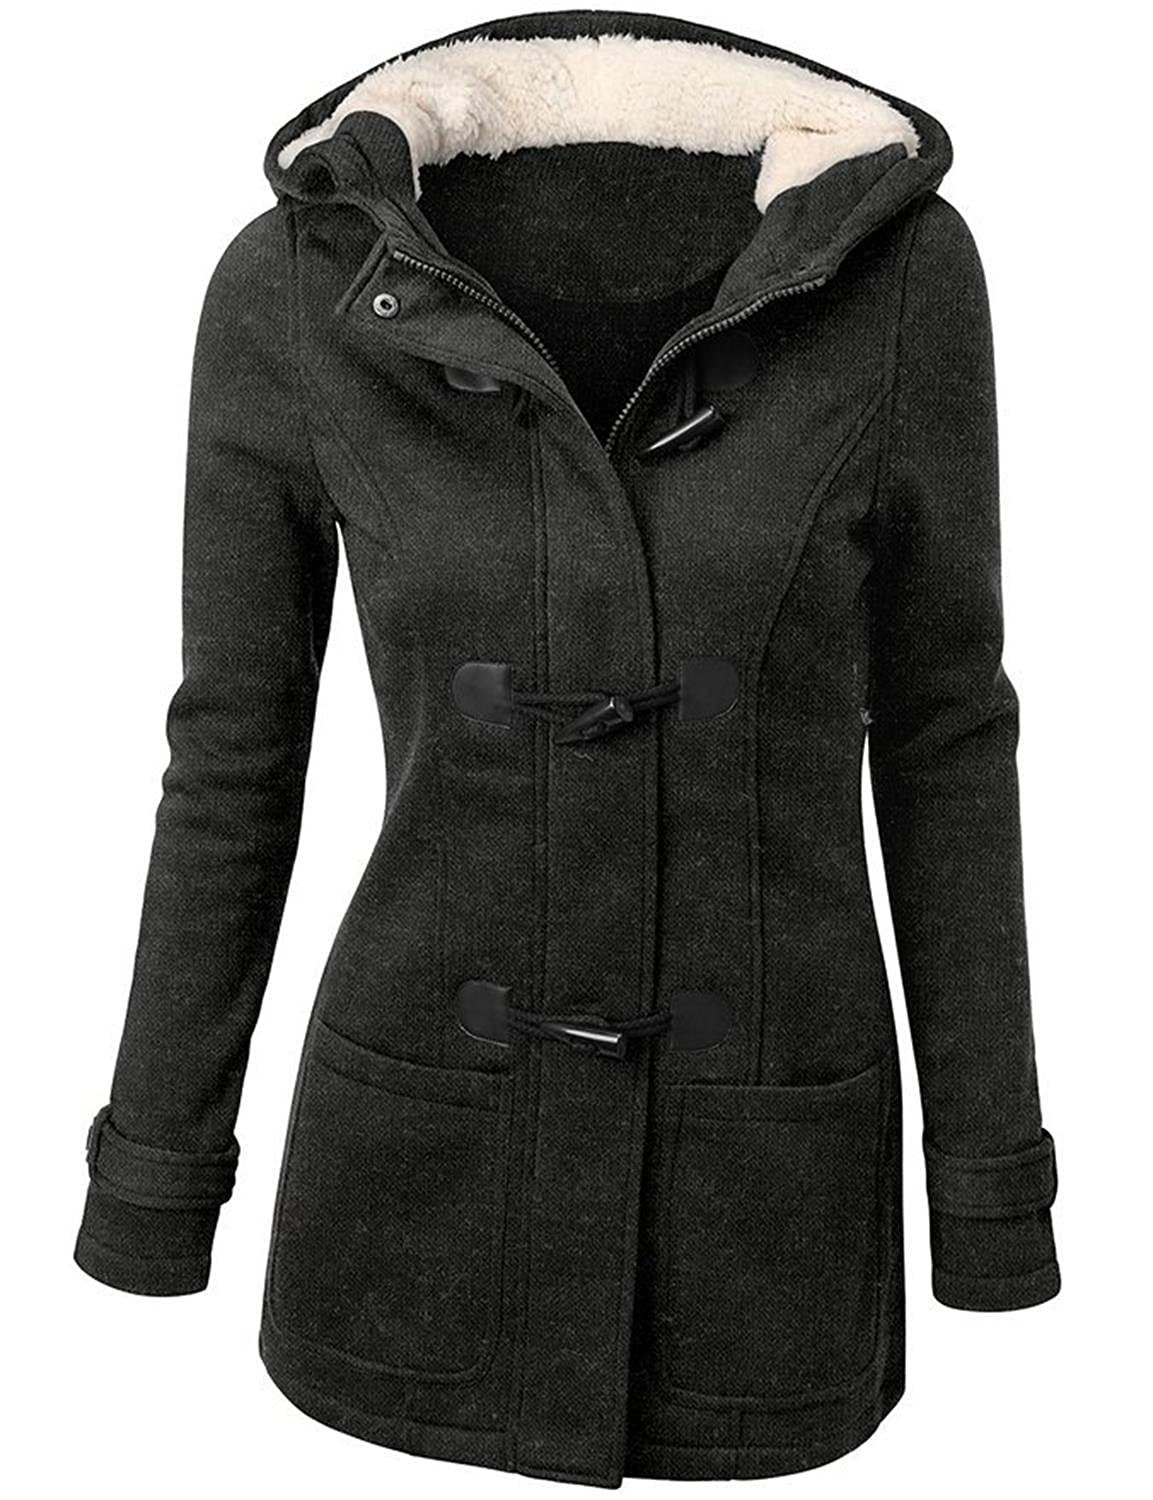 Womens Classic Double Breasted Pea Coat Jacket